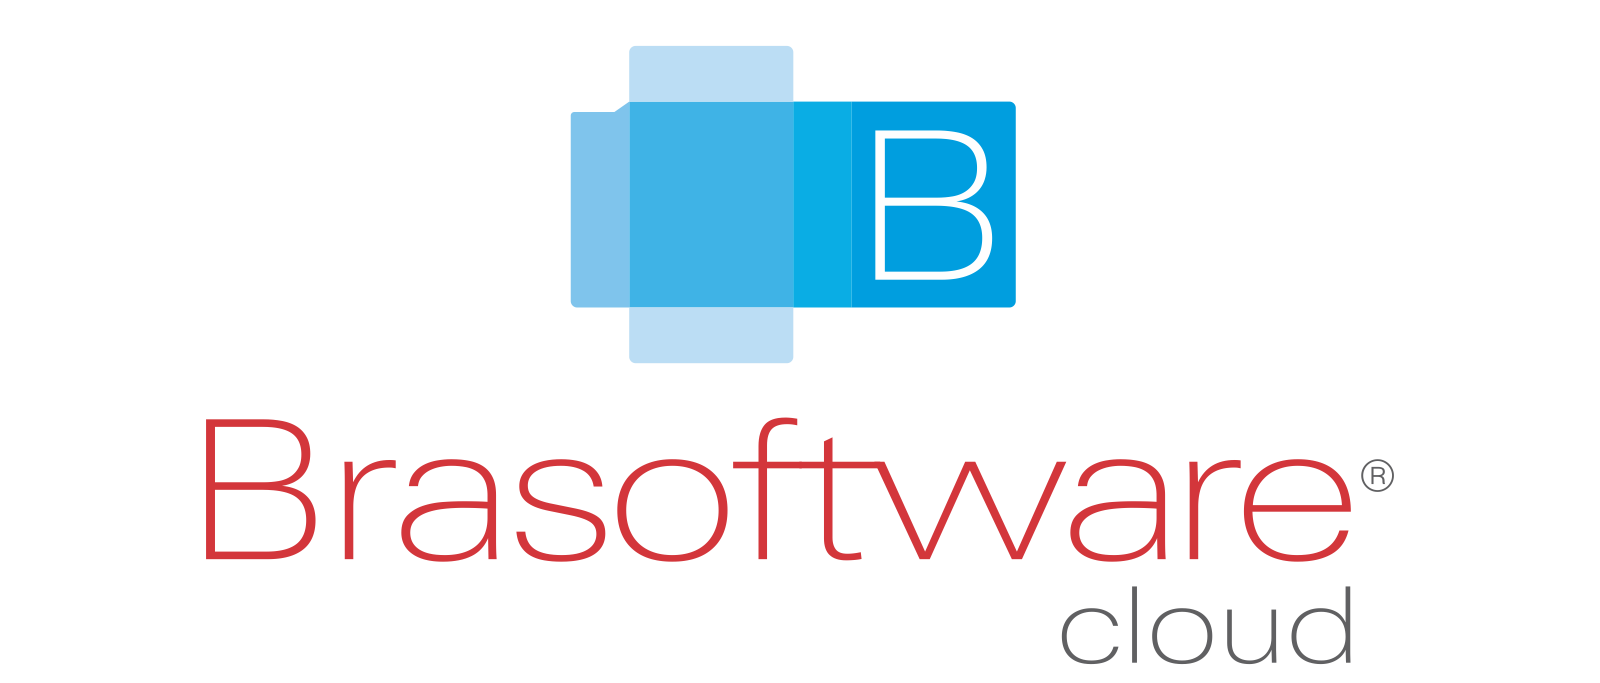 Logo Brasoftware Cloud